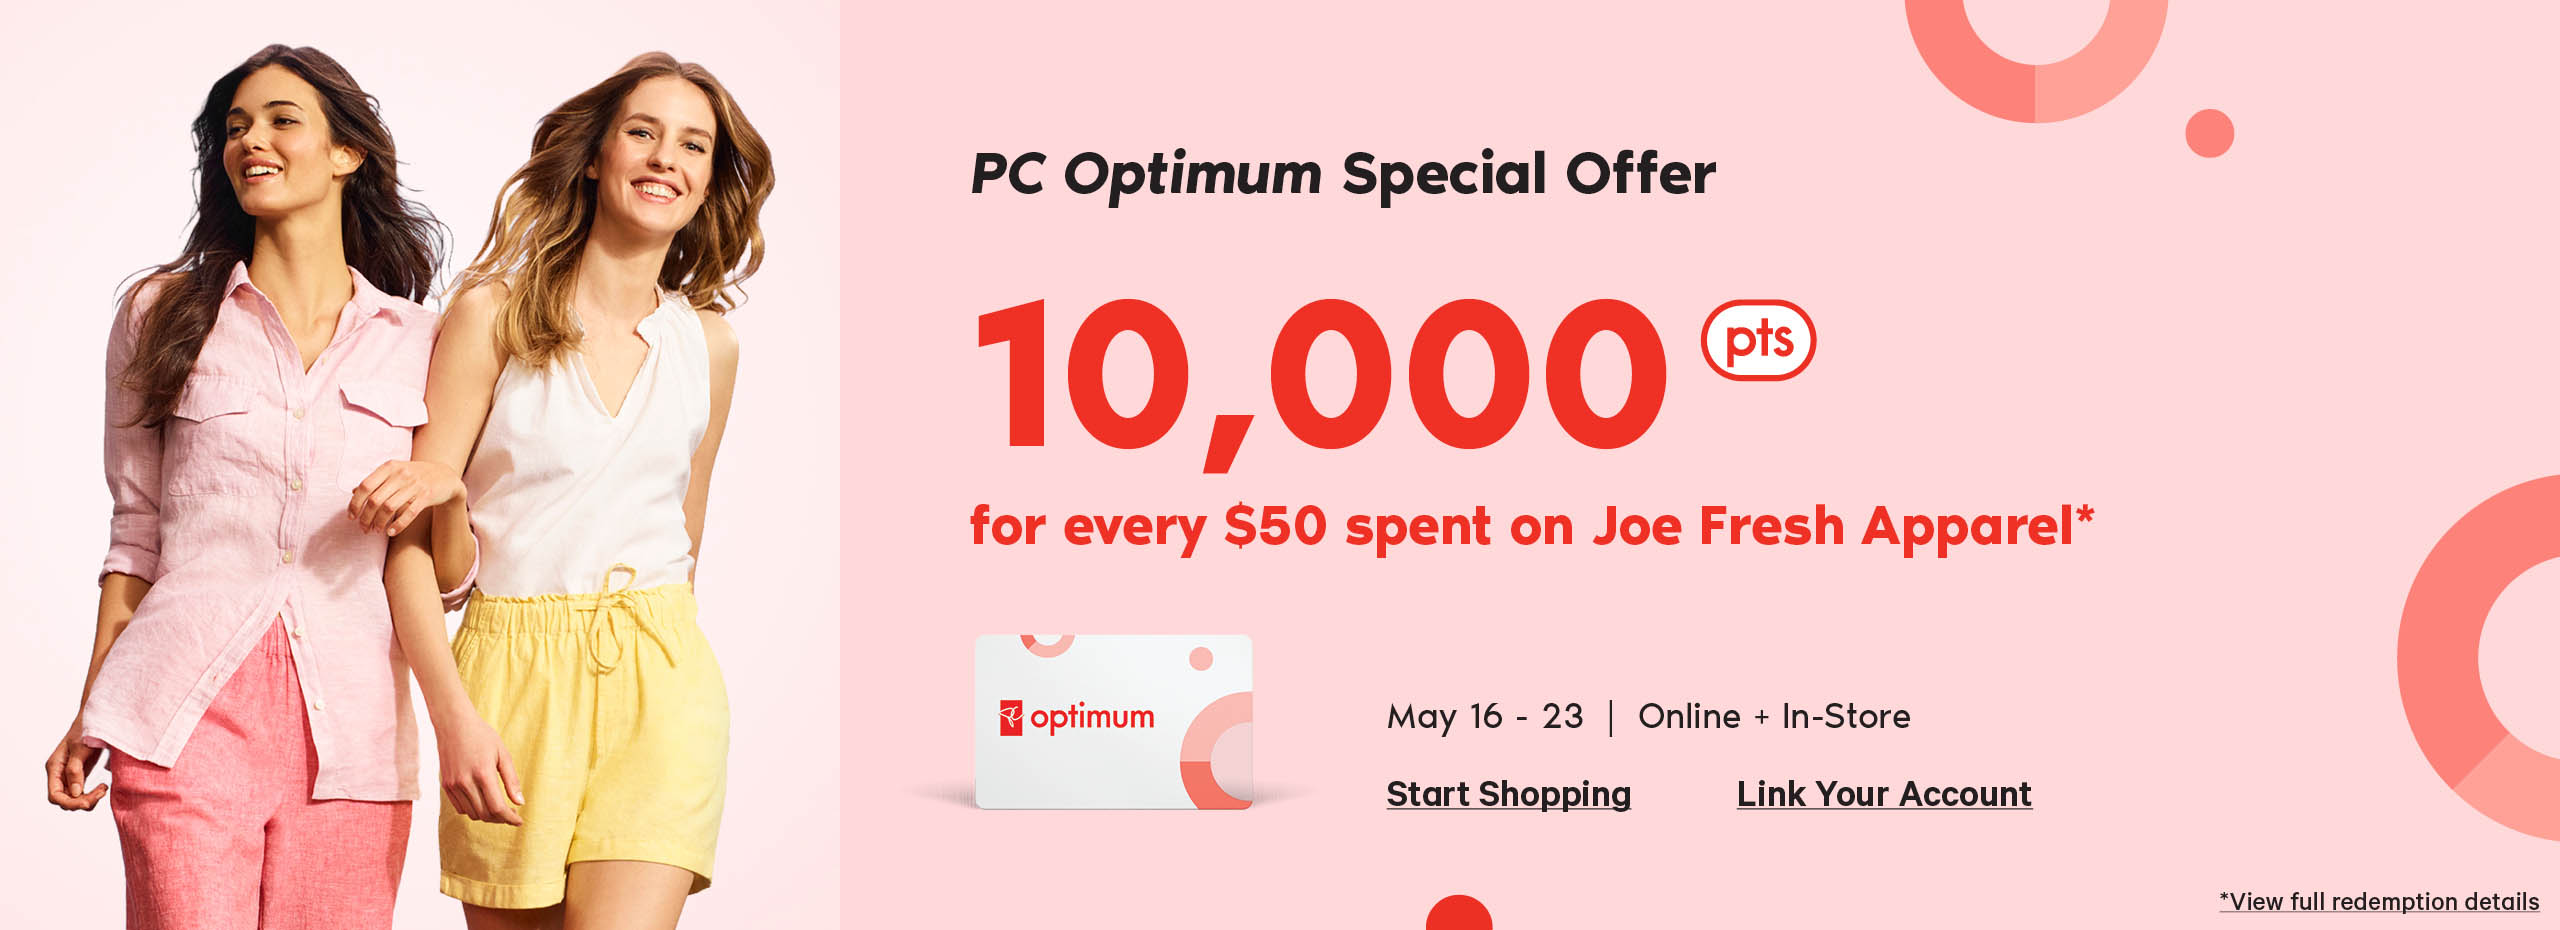 Ten thousand PC Optimum points every 50 dollars you spend